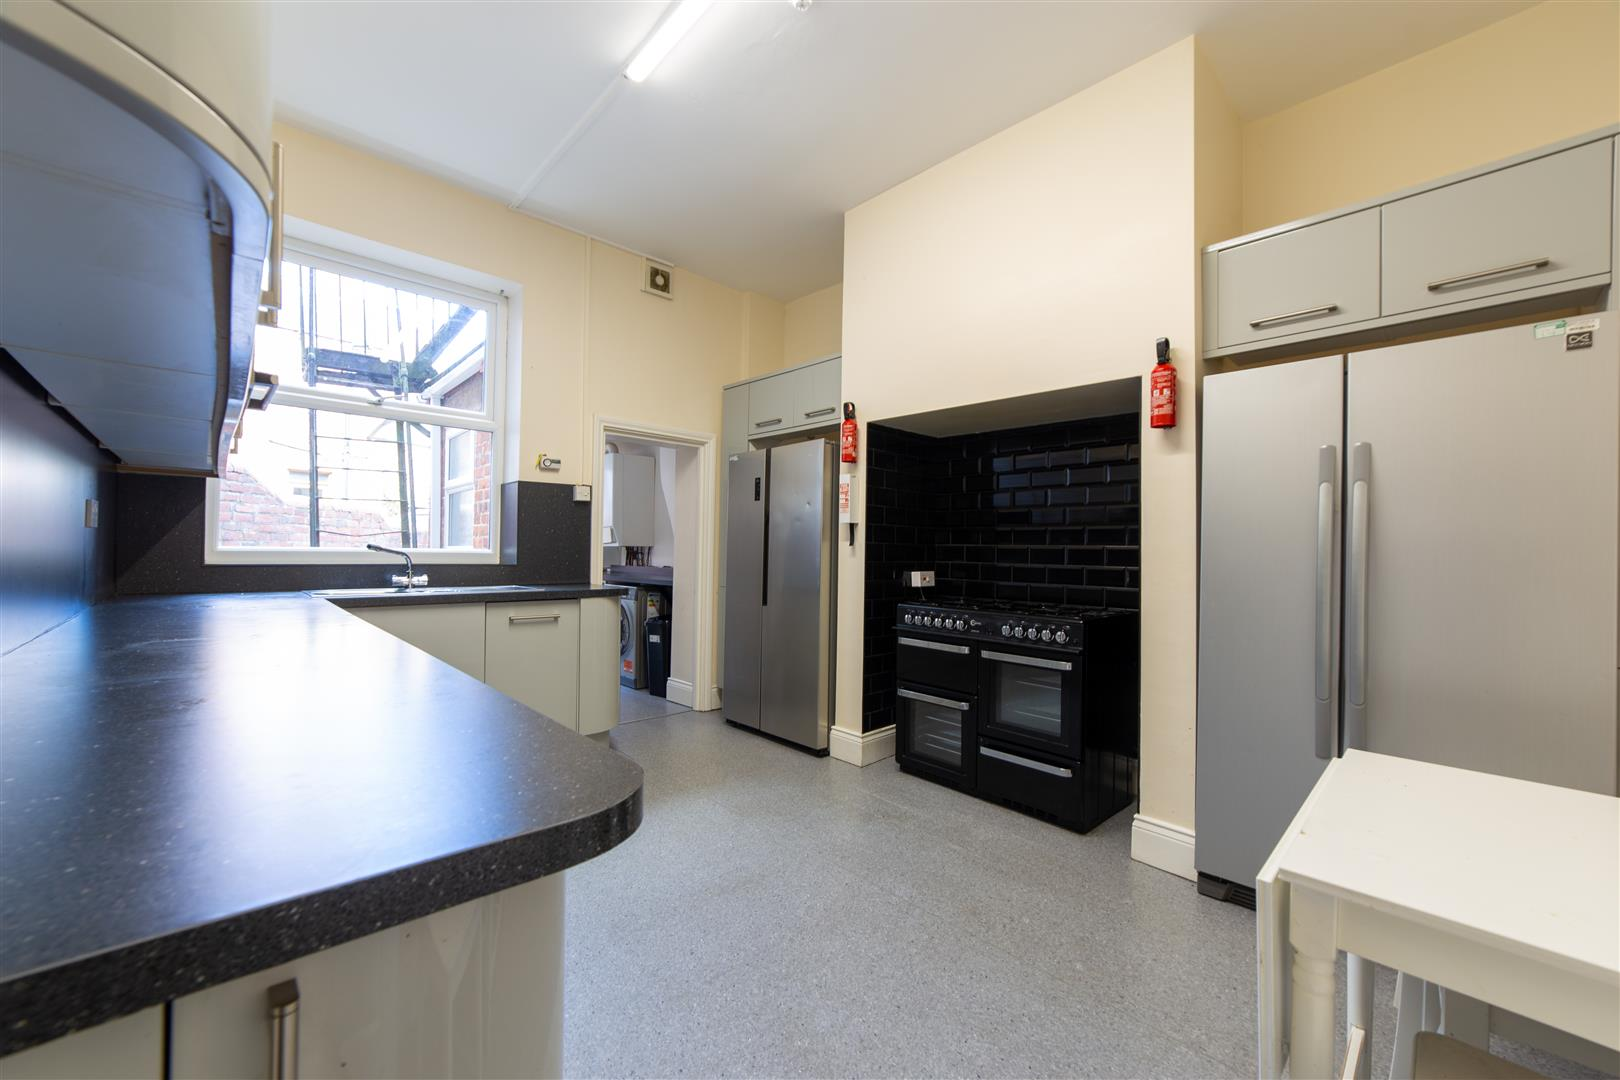 8 bed terraced house to rent in Newcastle Upon Tyne, NE2 1JS  - Property Image 2